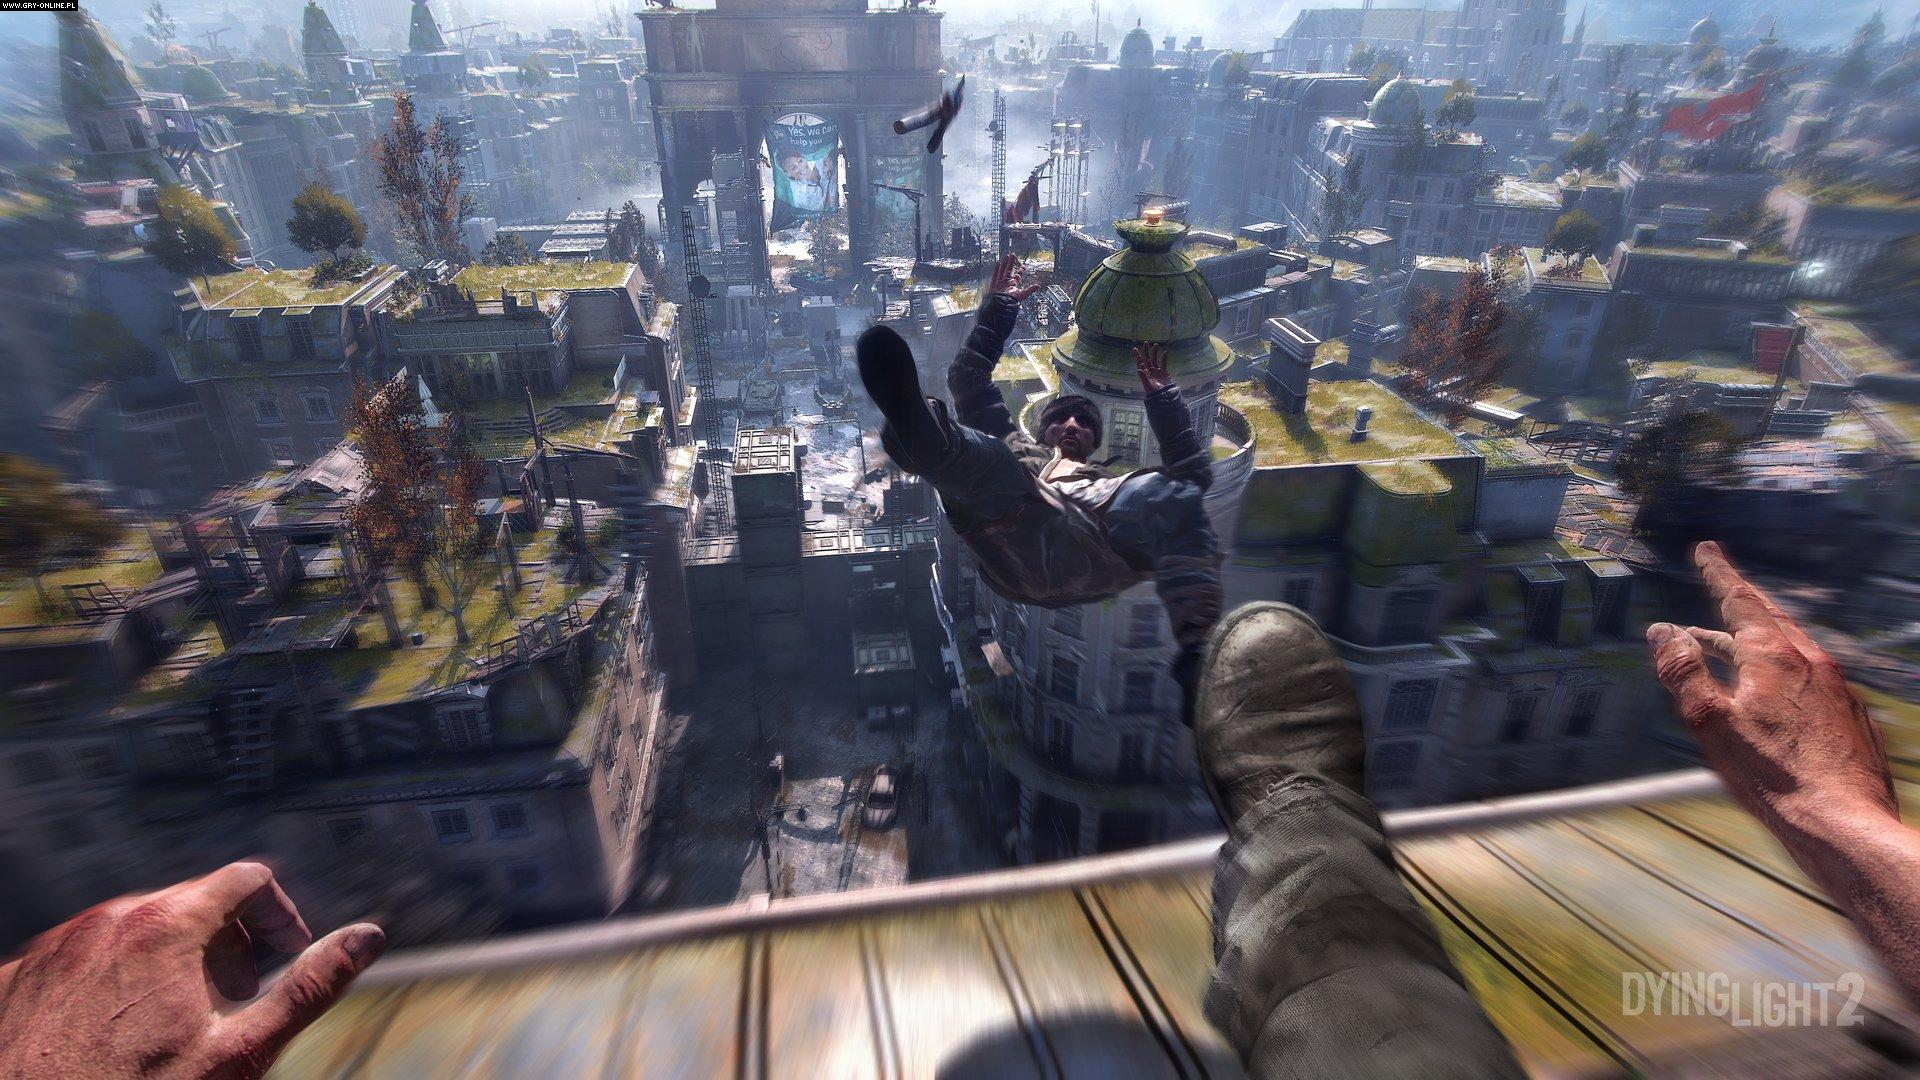 Dying Light 2 briefing